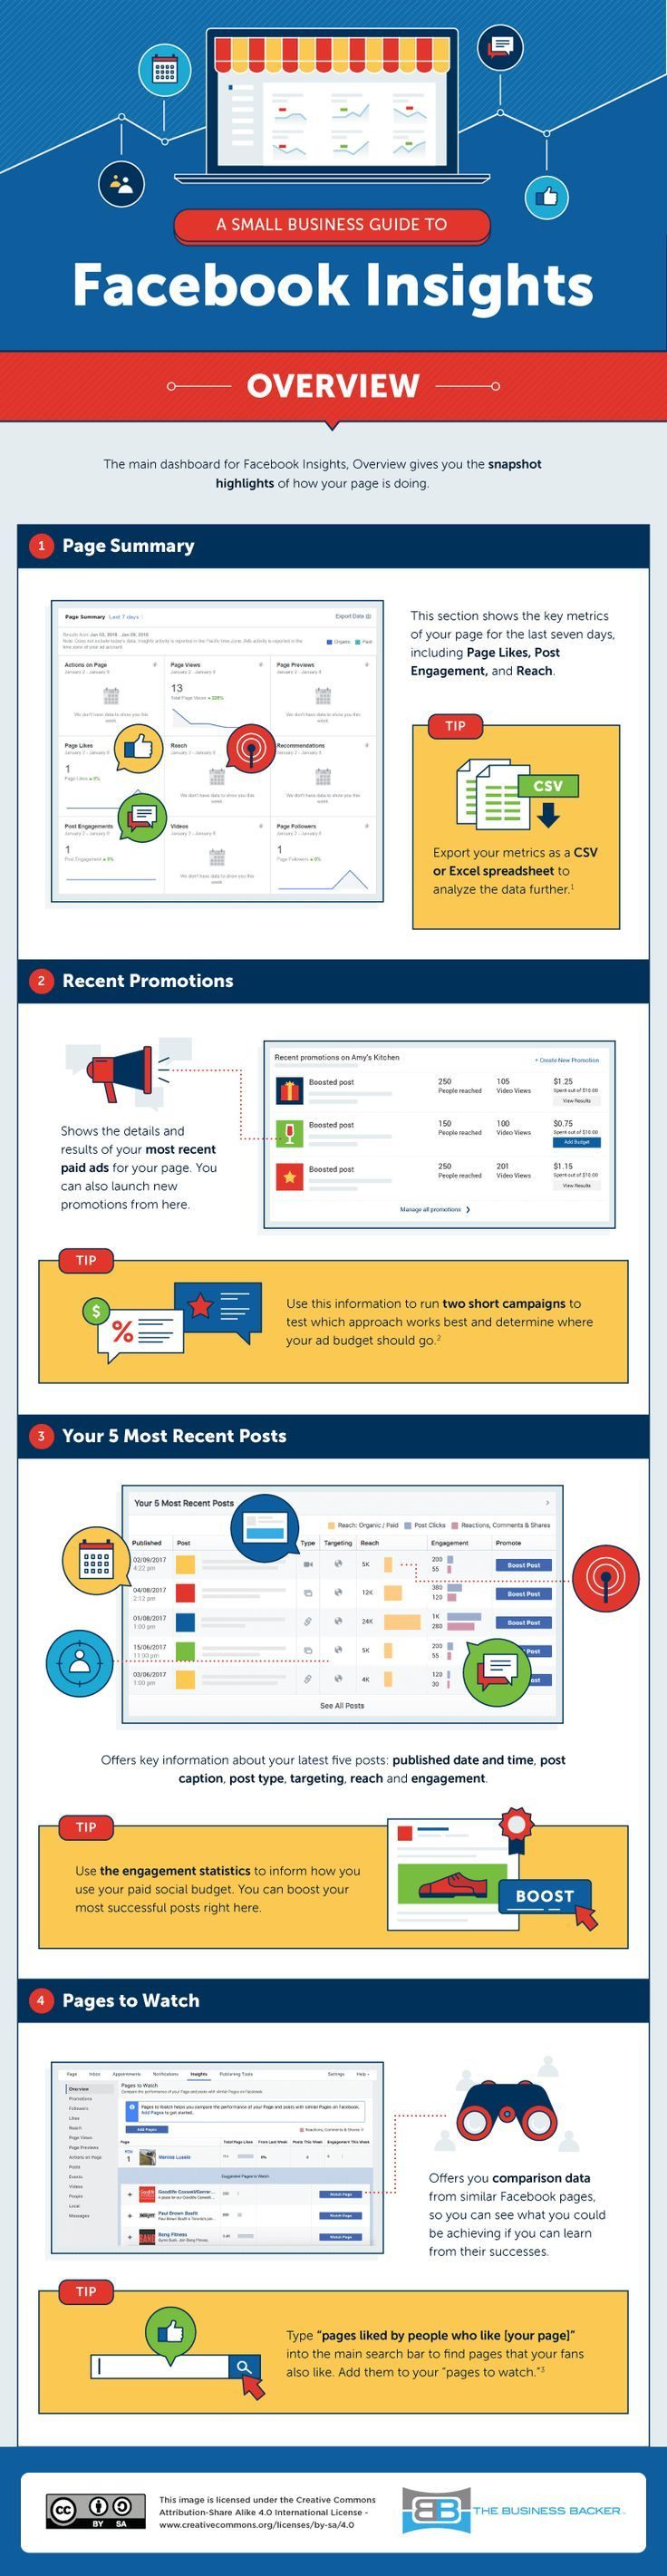 1529335194_555_Marketing-Infographic-Small-business-marketing-tips-Wondering-how-to-use-Facebook-Insights-to-improve Advertising Infographics : Small business marketing tips: Wondering how to use Facebook Insights to improve...